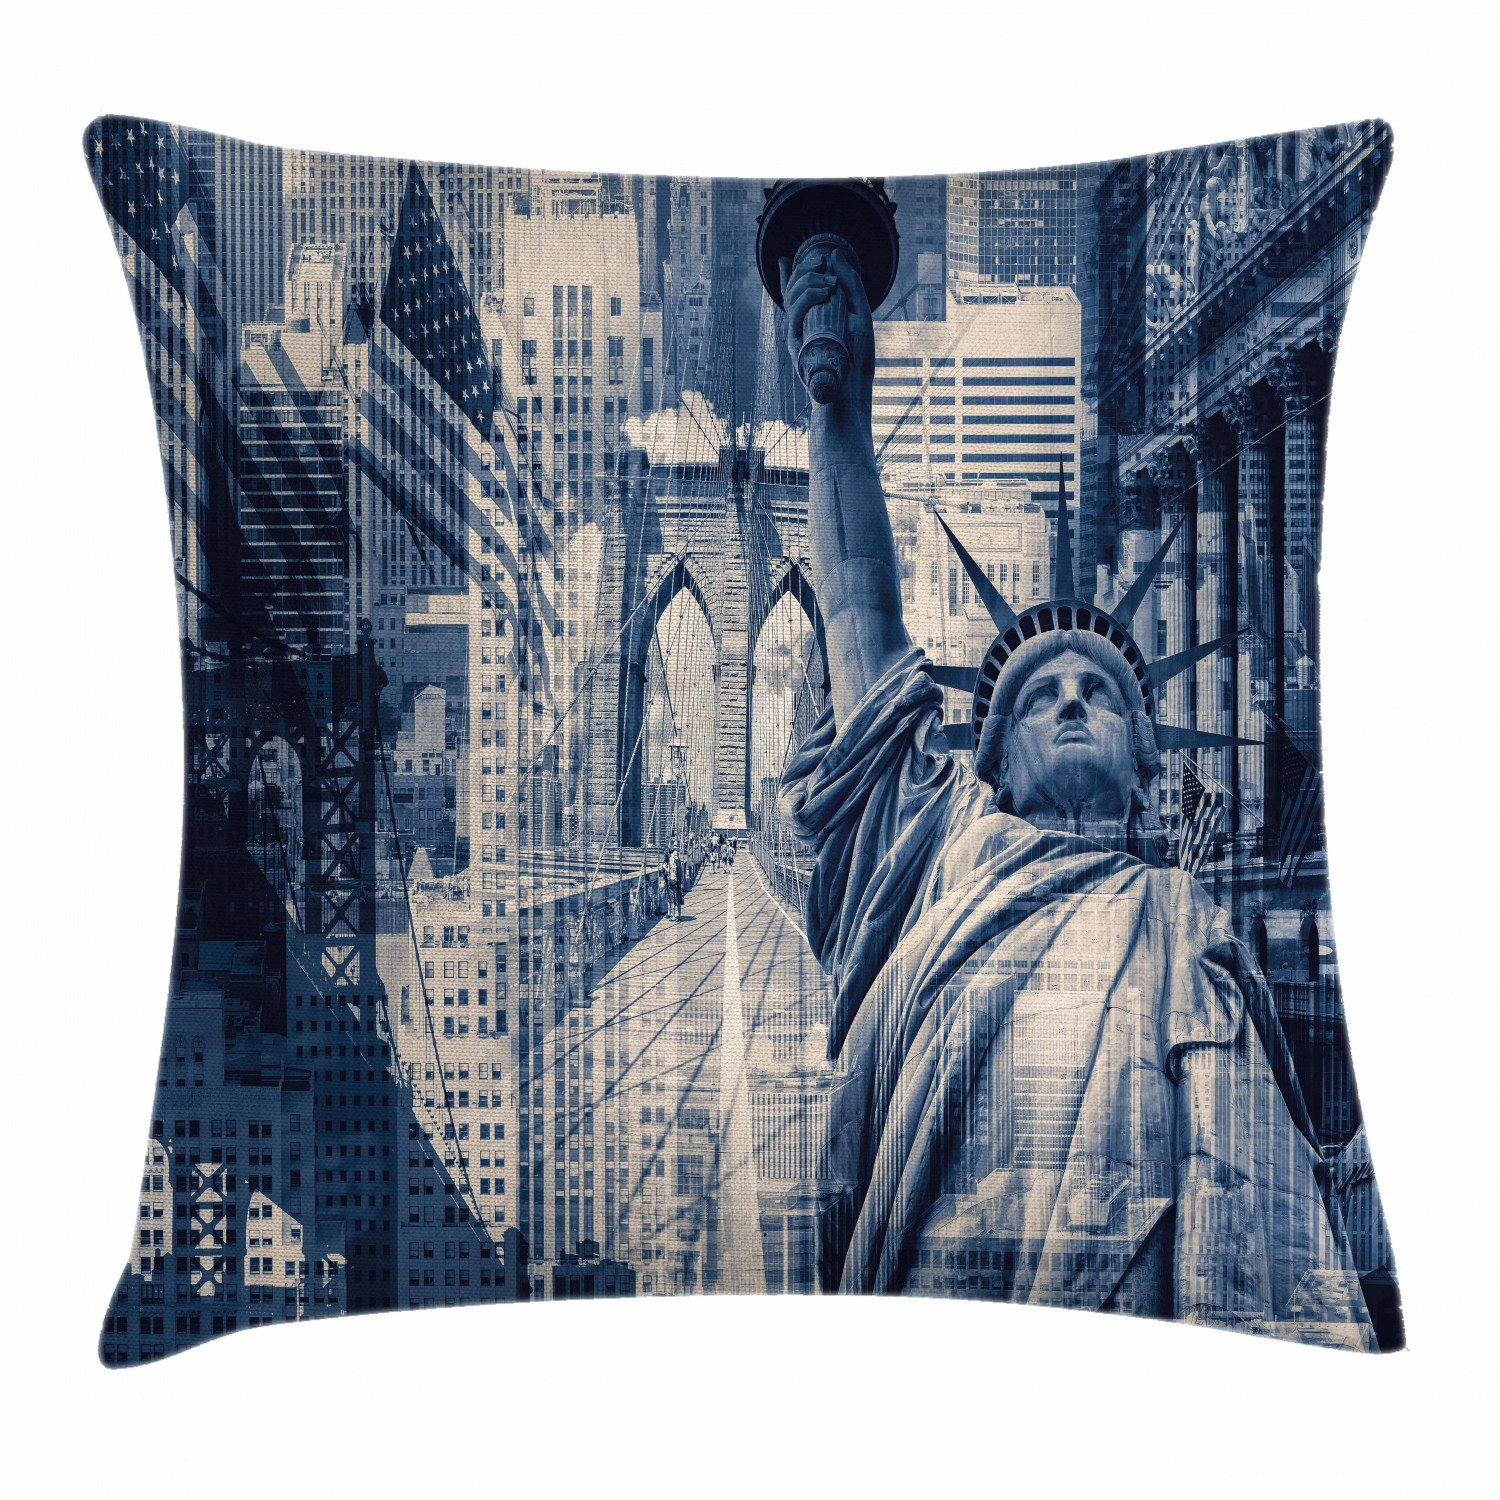 United States Throw Pillow Cushion Cover Double Exposure Image Of Statue Of Liberty With New York Buildings Decorative Square Accent Pillow Case 16 X 16 Inches Dark Blue Purplegrey By Ambesonne